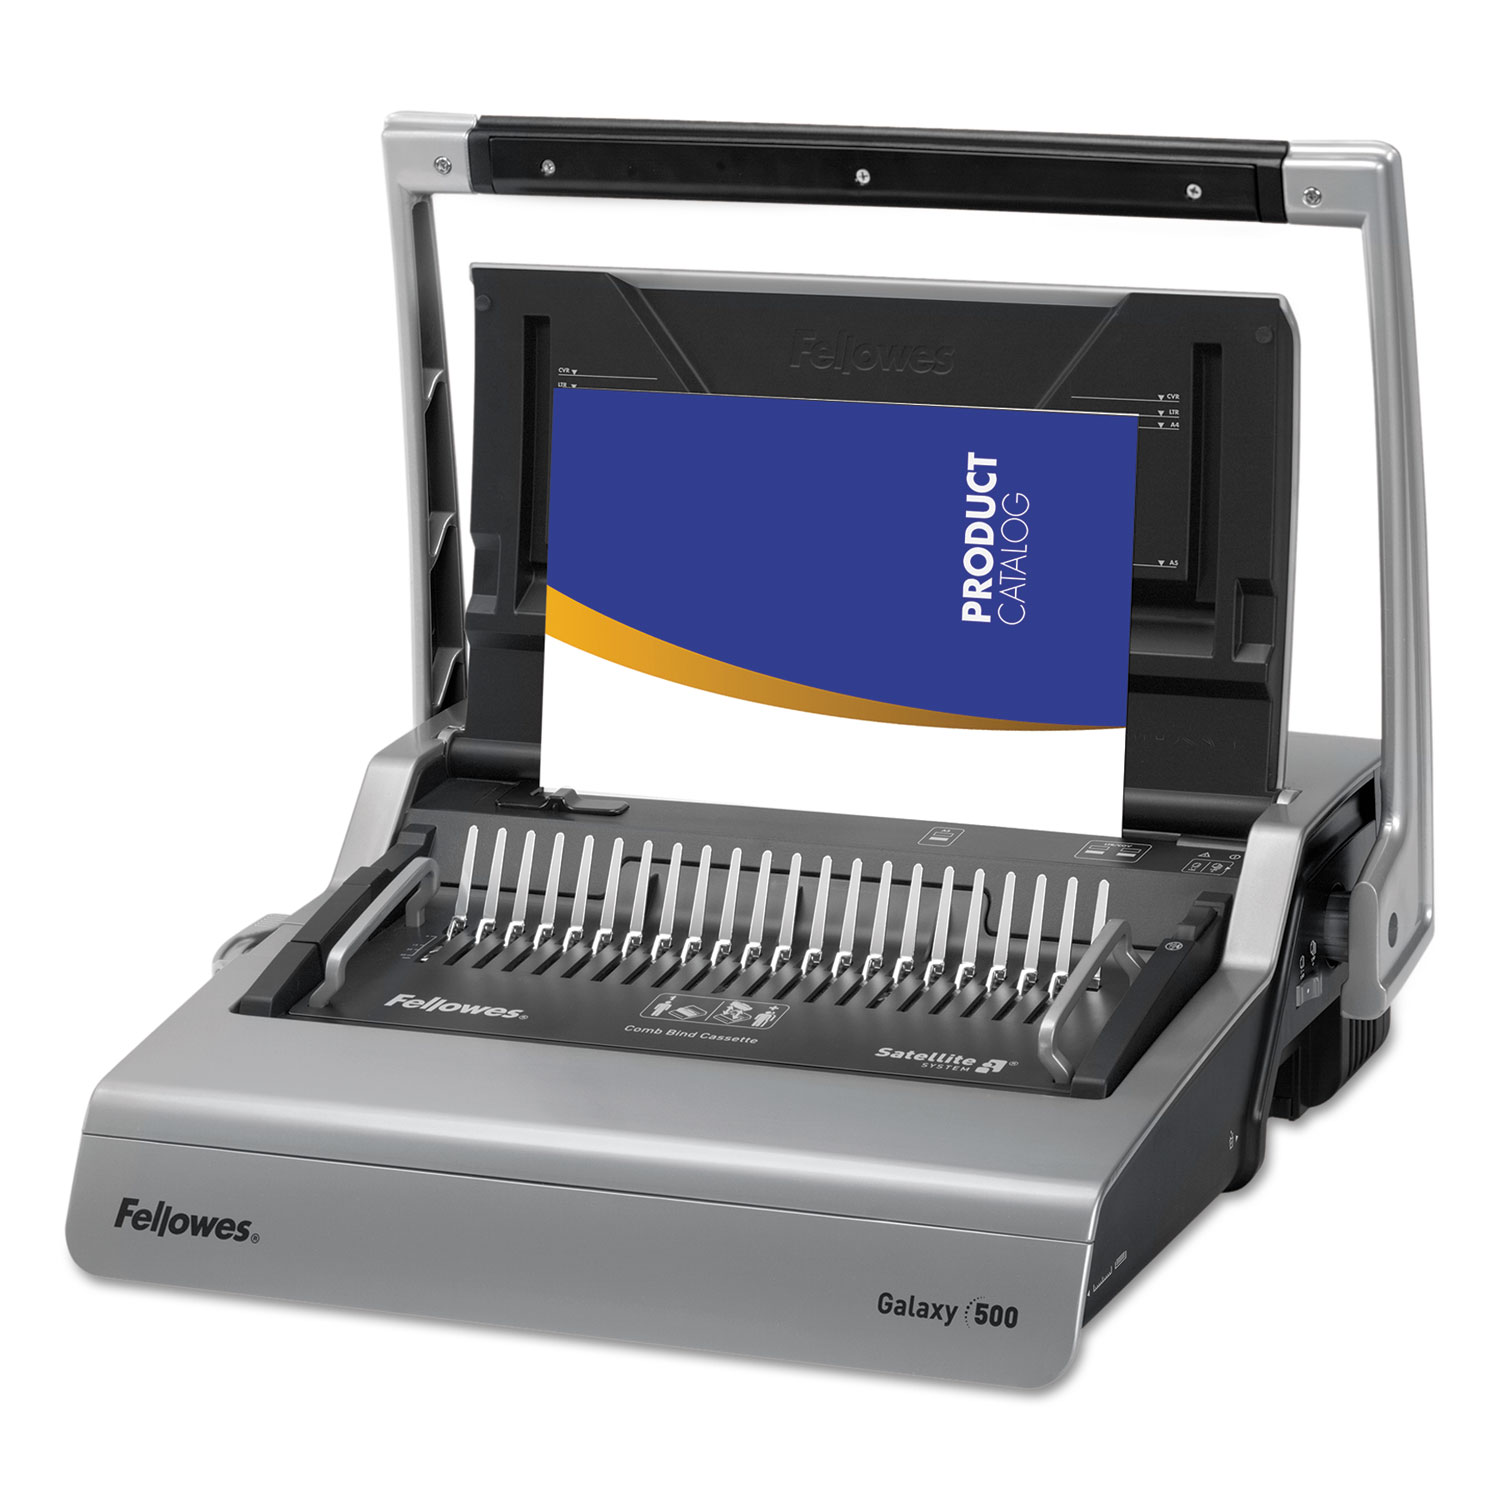 View Galaxy™ 500 Comb Binding Systems And Other Binding